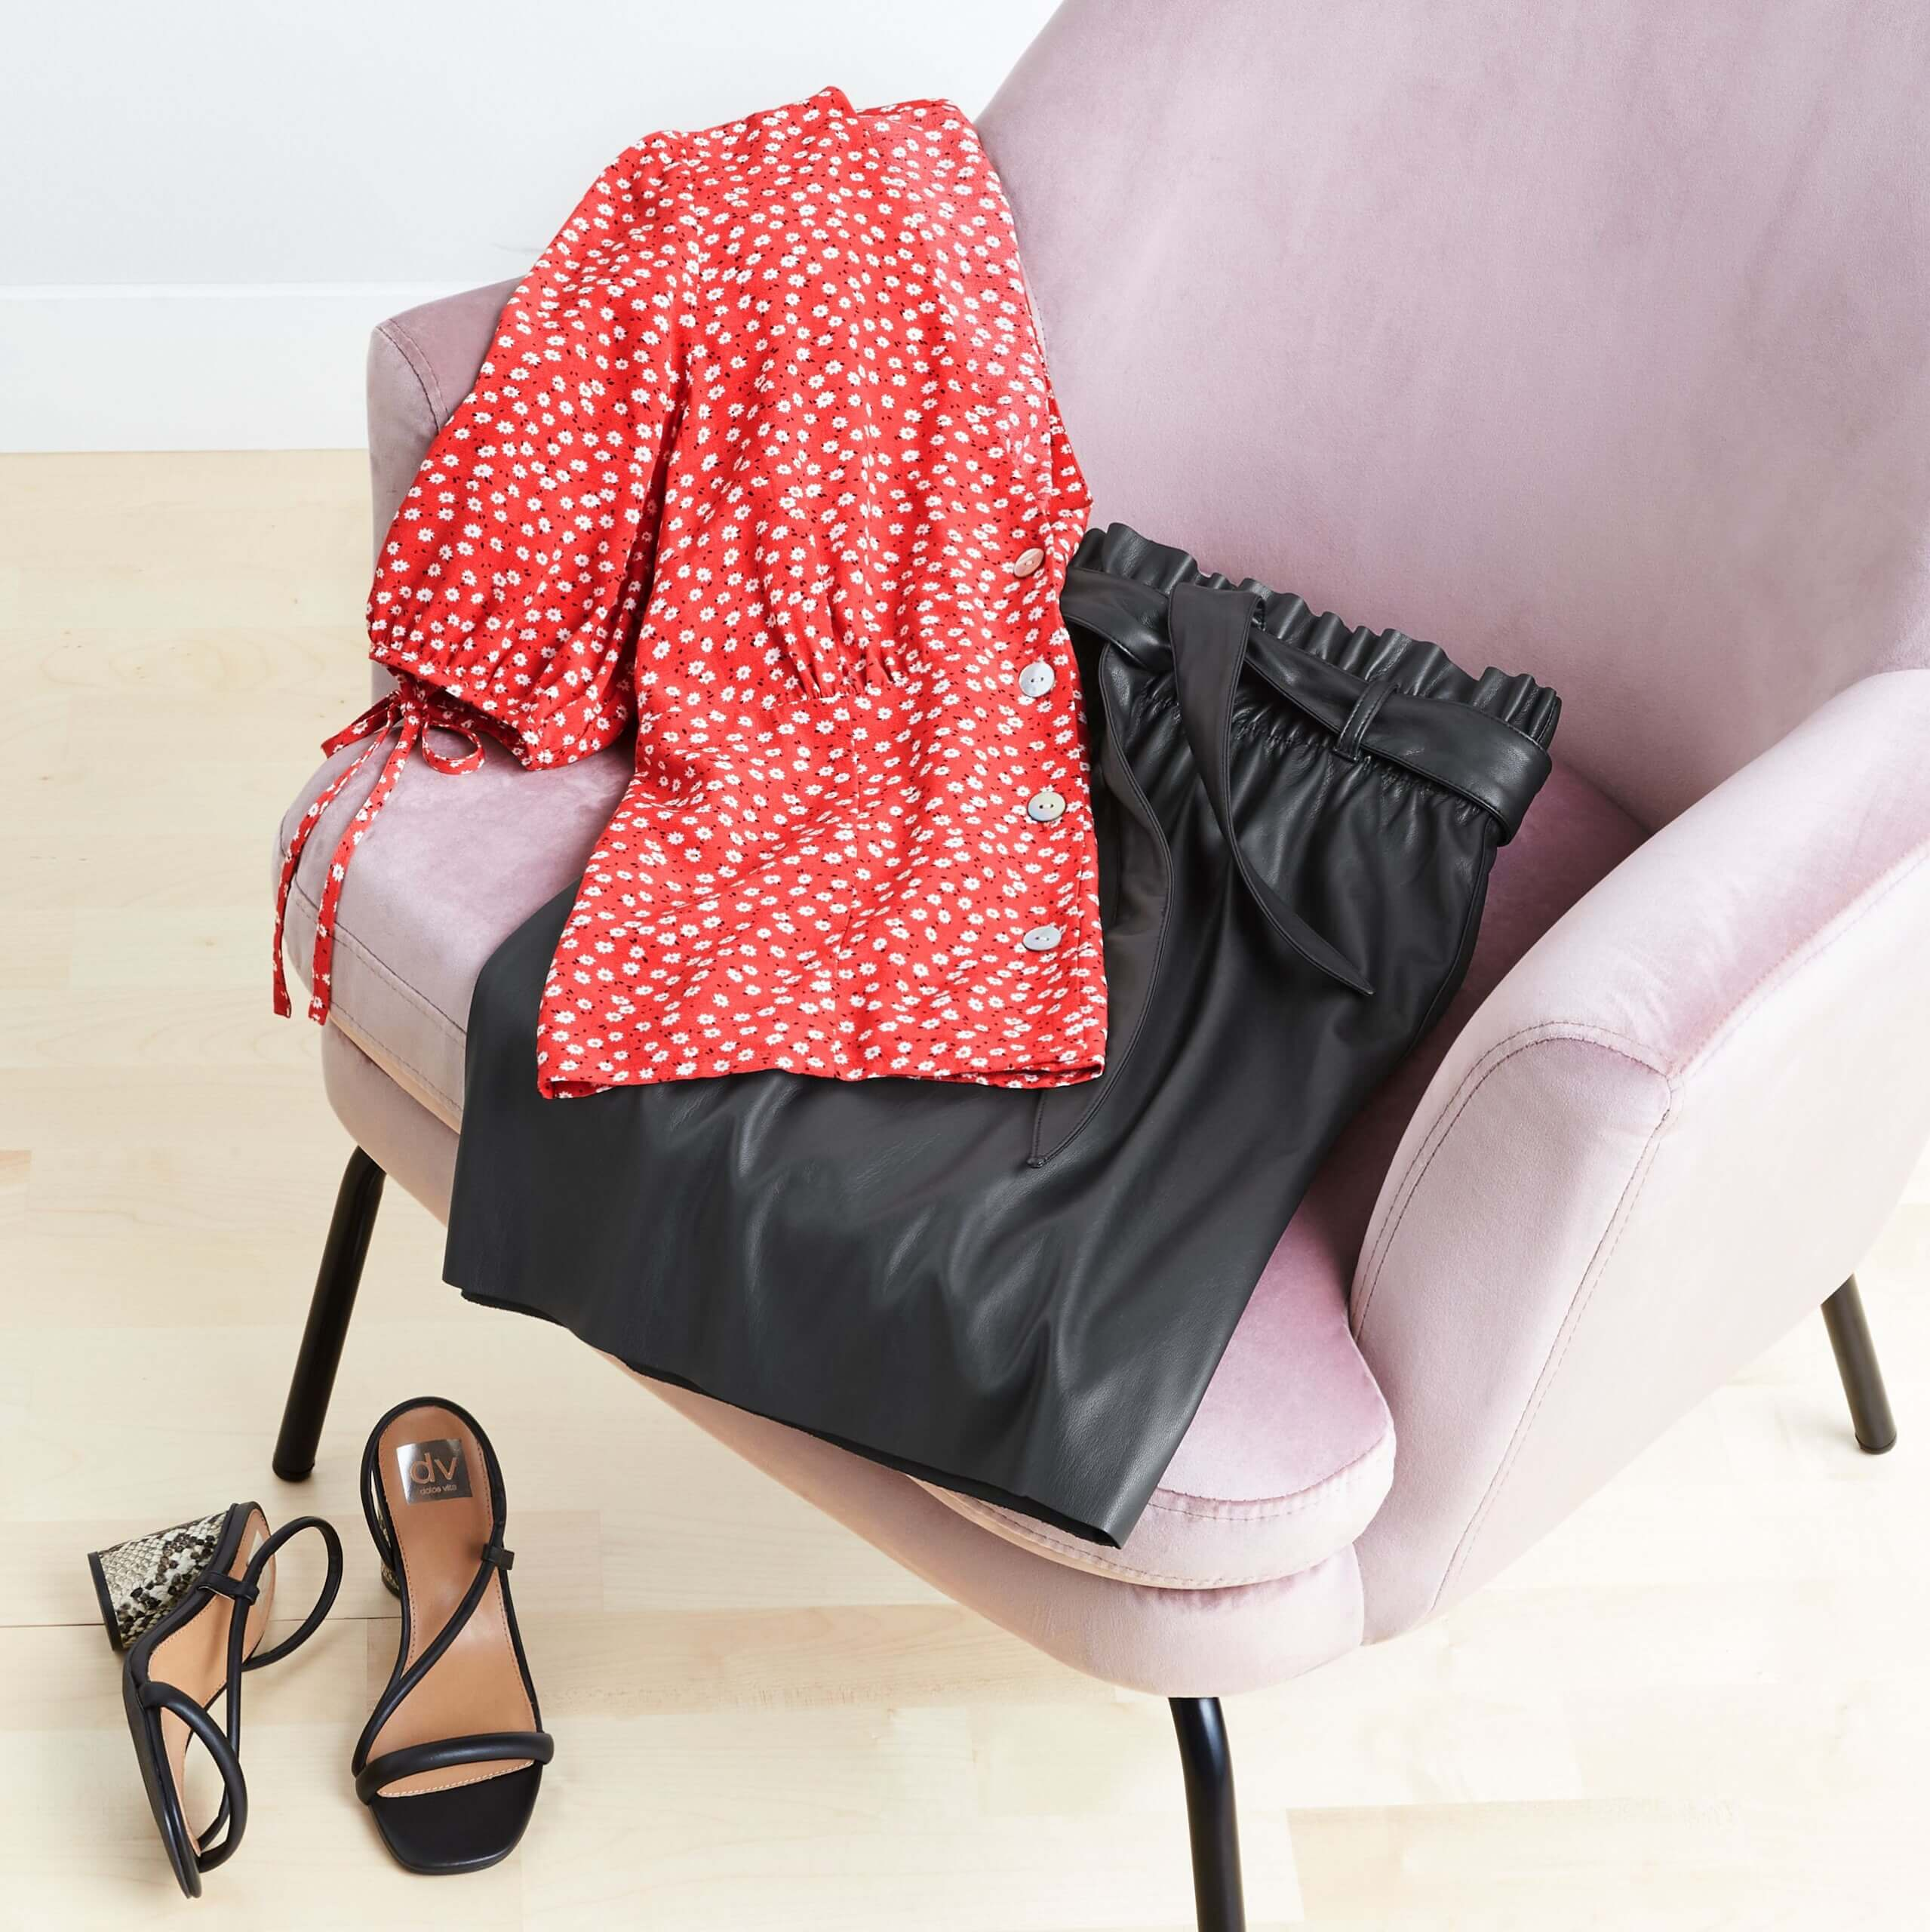 Stitch Fix Women's outfit laydown featuring red top with dainty white florals, black leather skirts on blush pink chair next to black wedges on the floor.